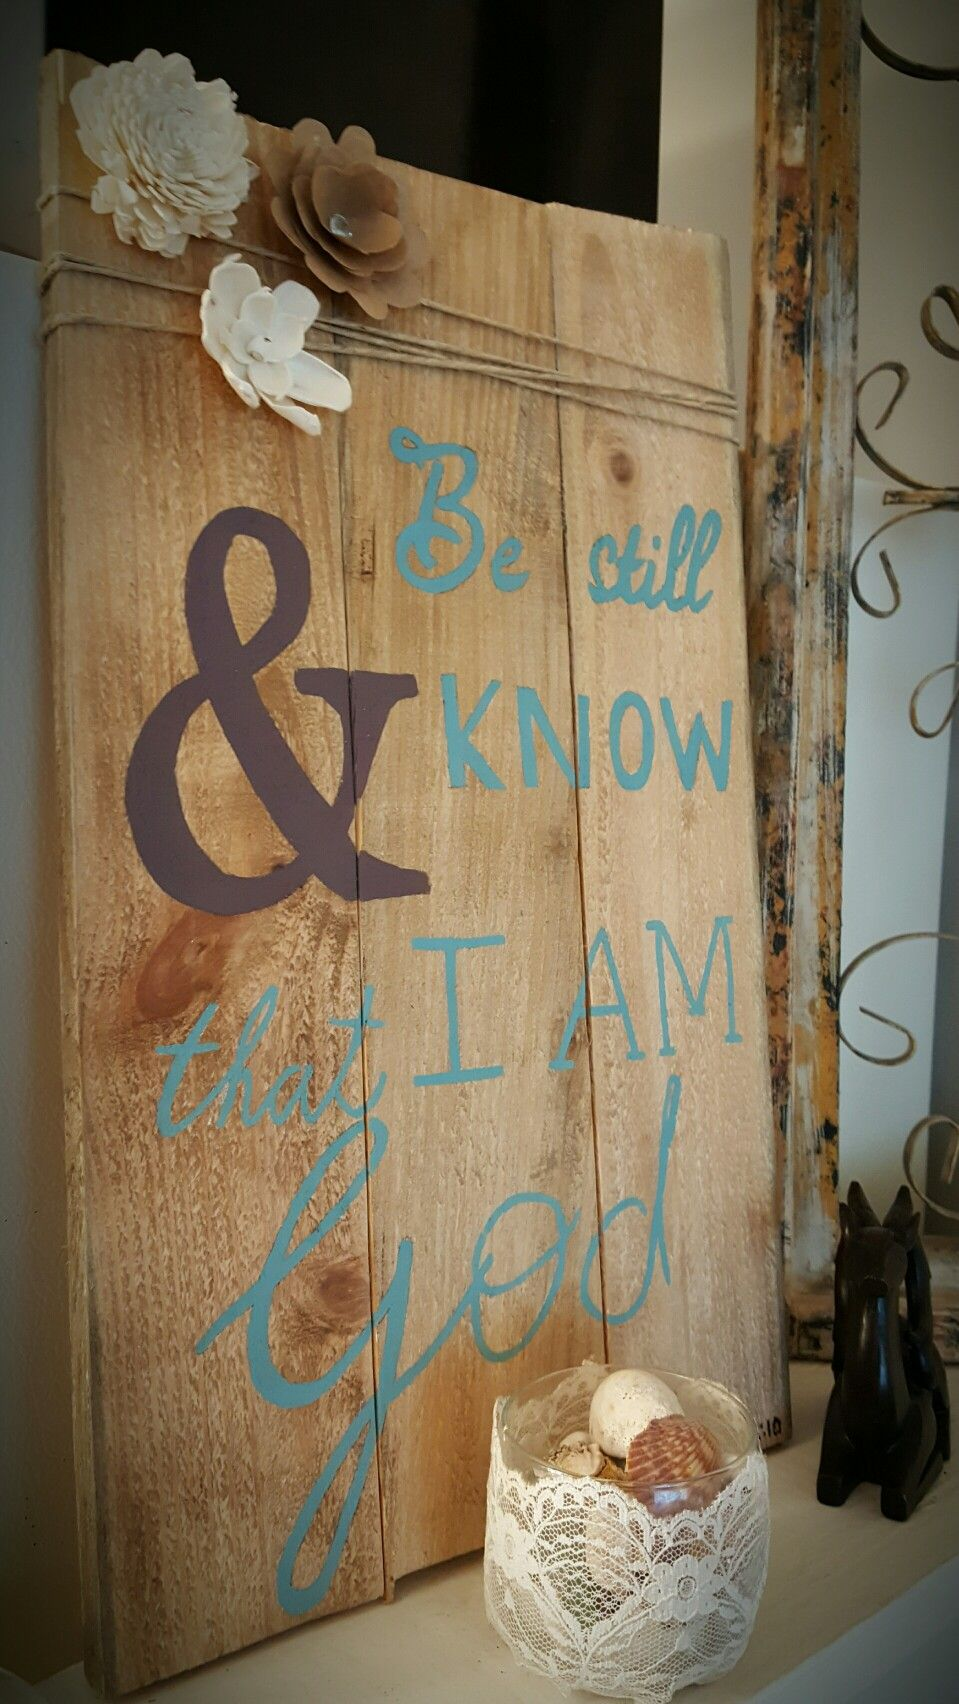 Be still & know.  Wood pallet. Painted sign